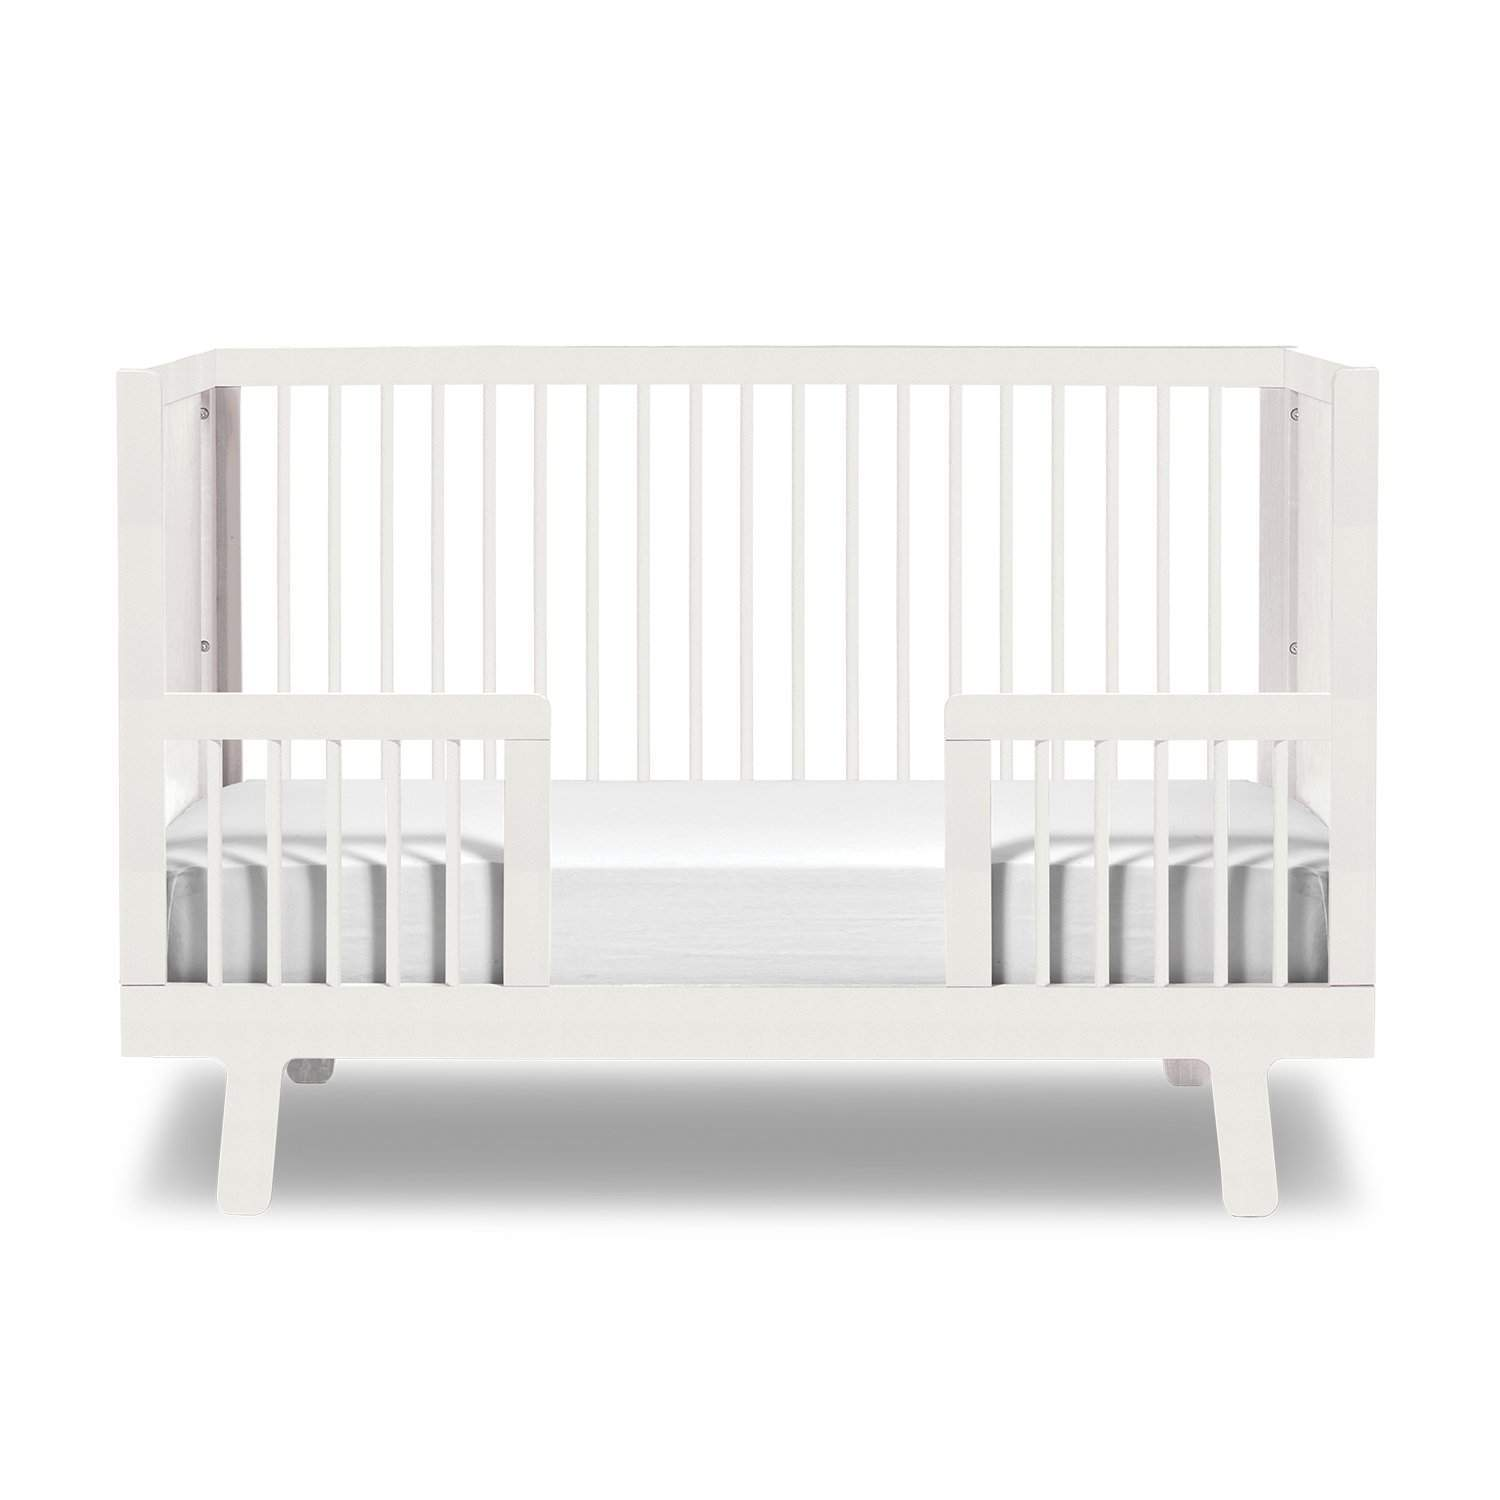 Oeuf Sparrow Toddler Bed Conversion Kit